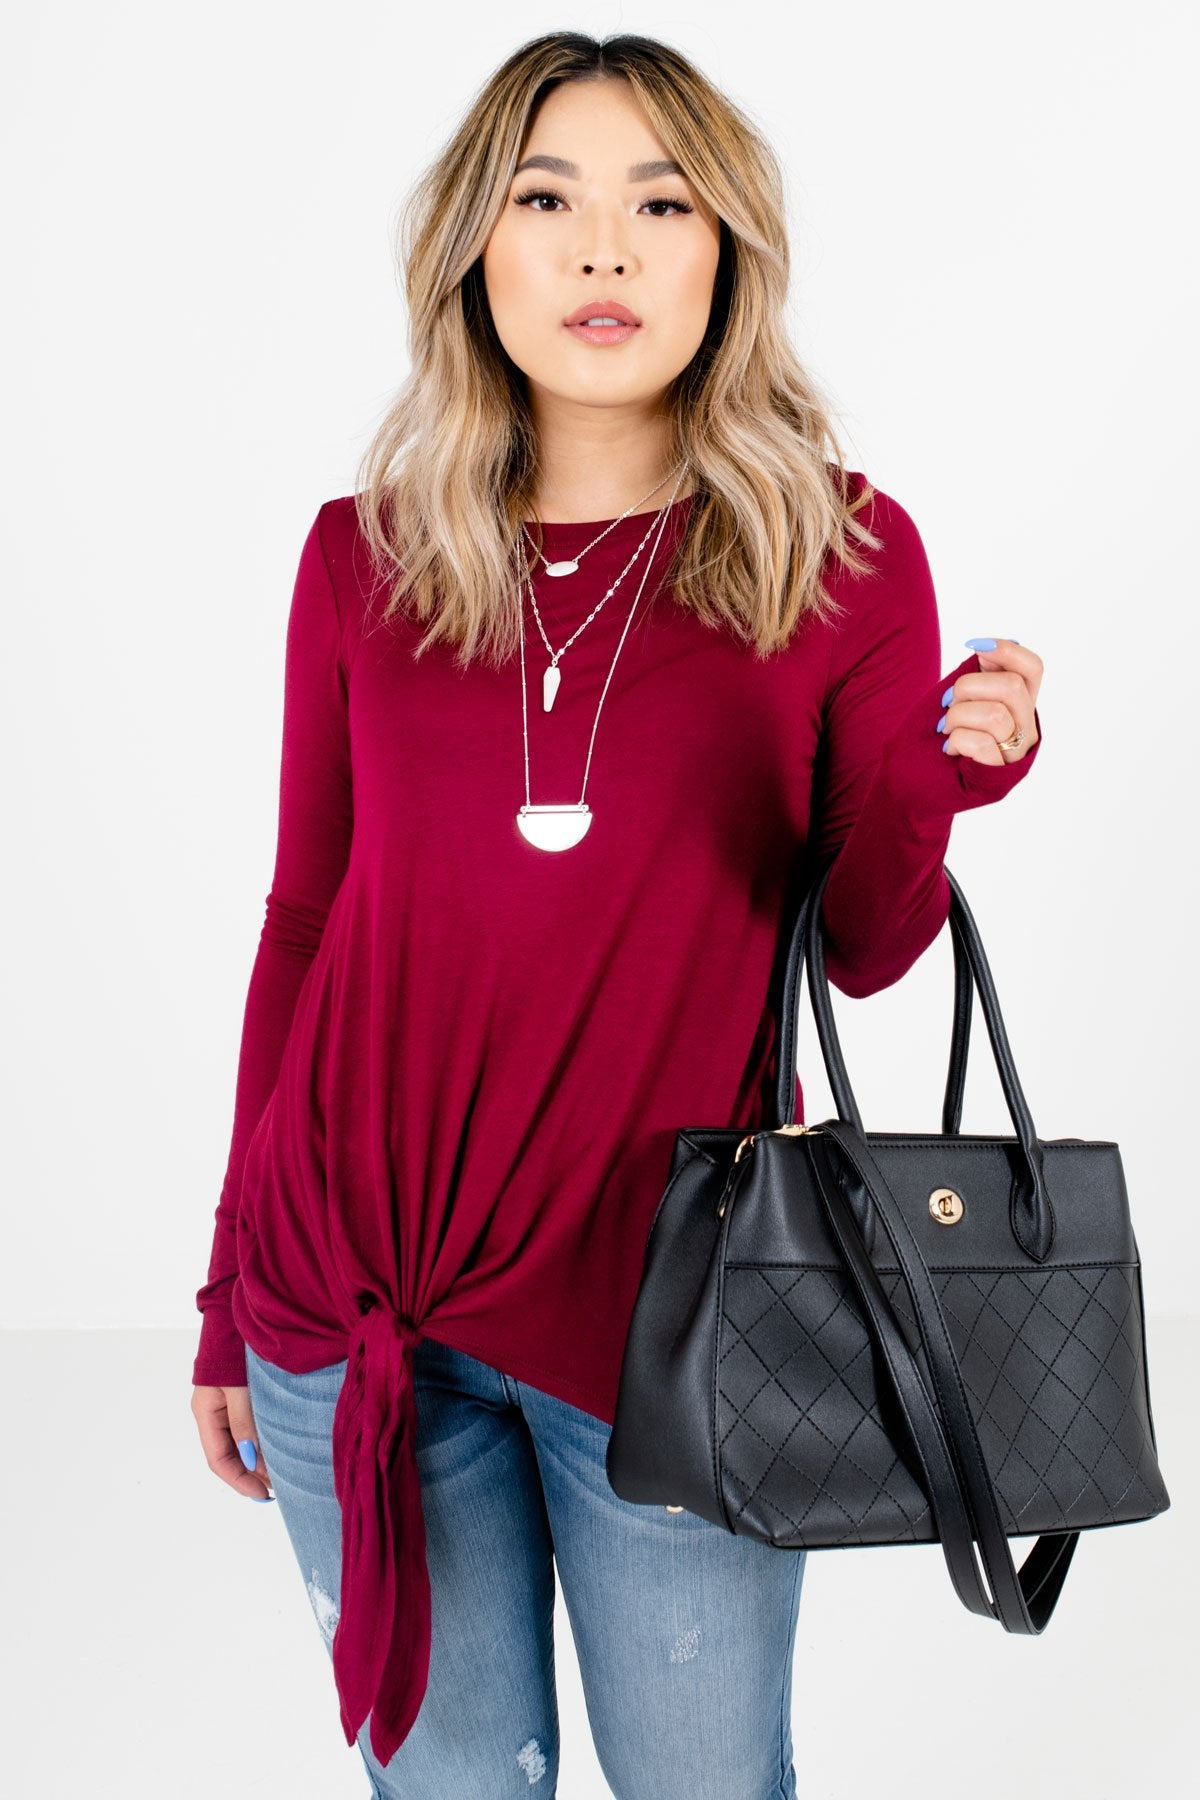 Burgundy Long Sleeve Boutique Tops for Women